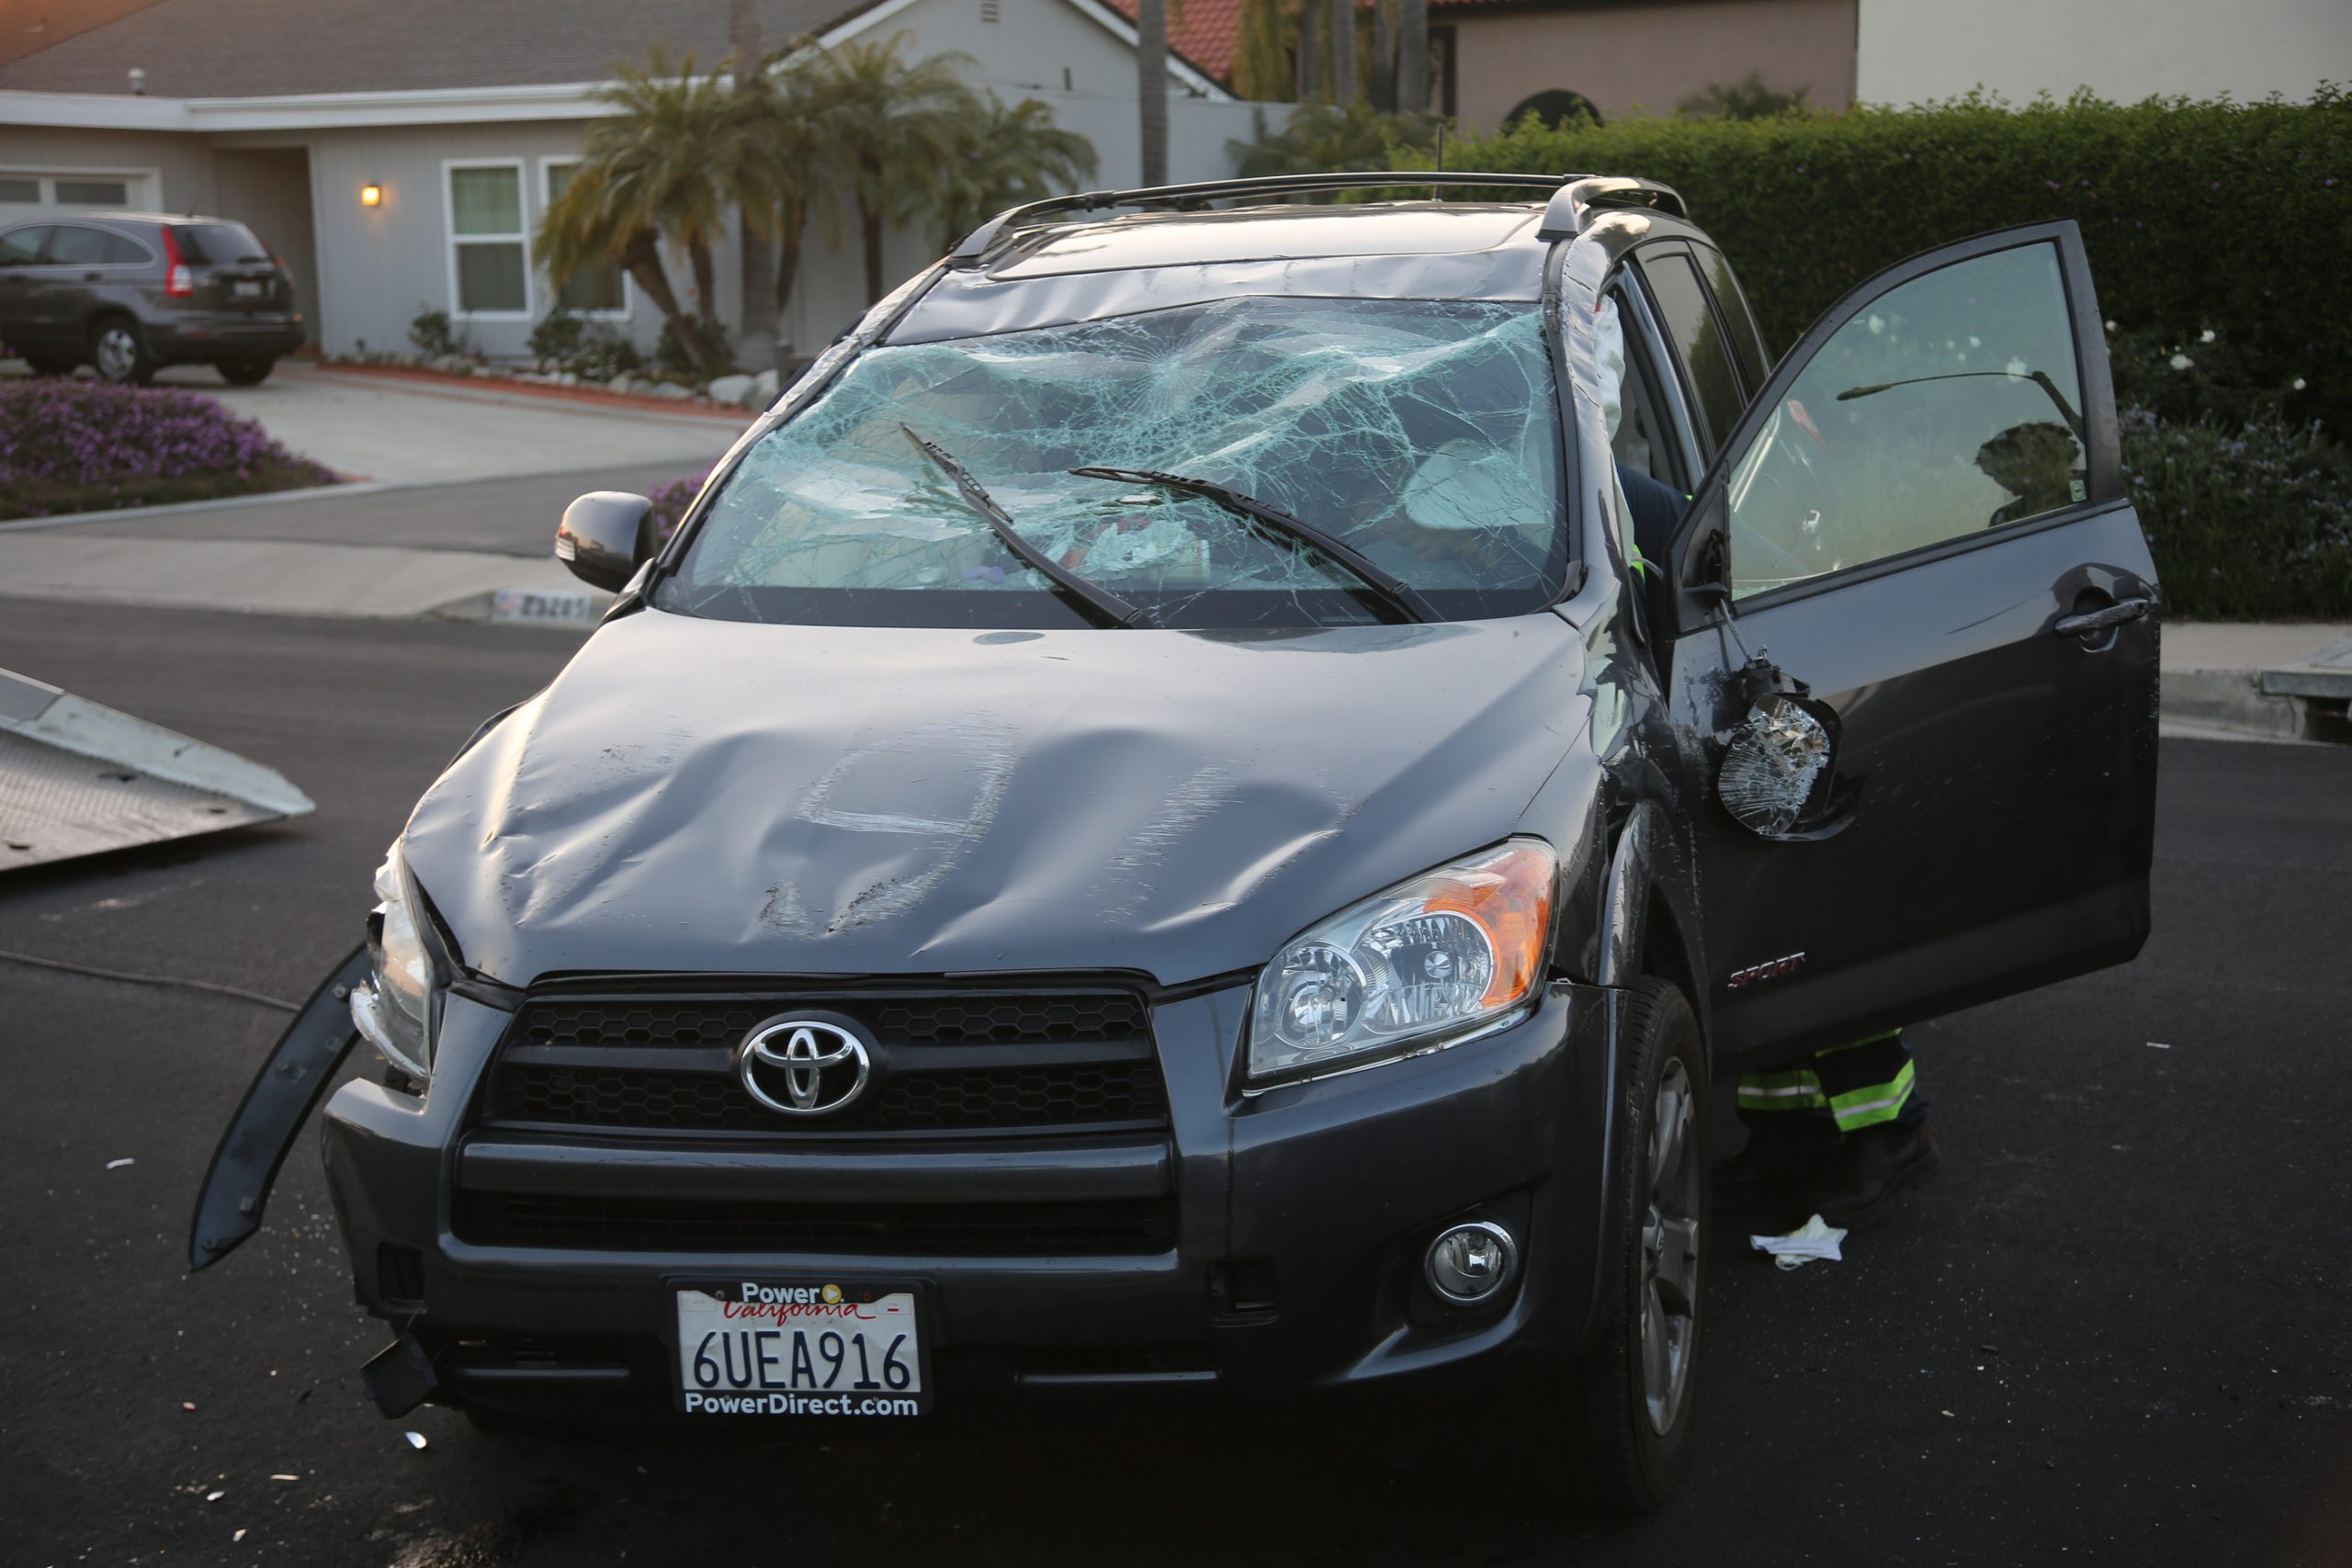 Sell Damaged Car: The Ultimate Guide